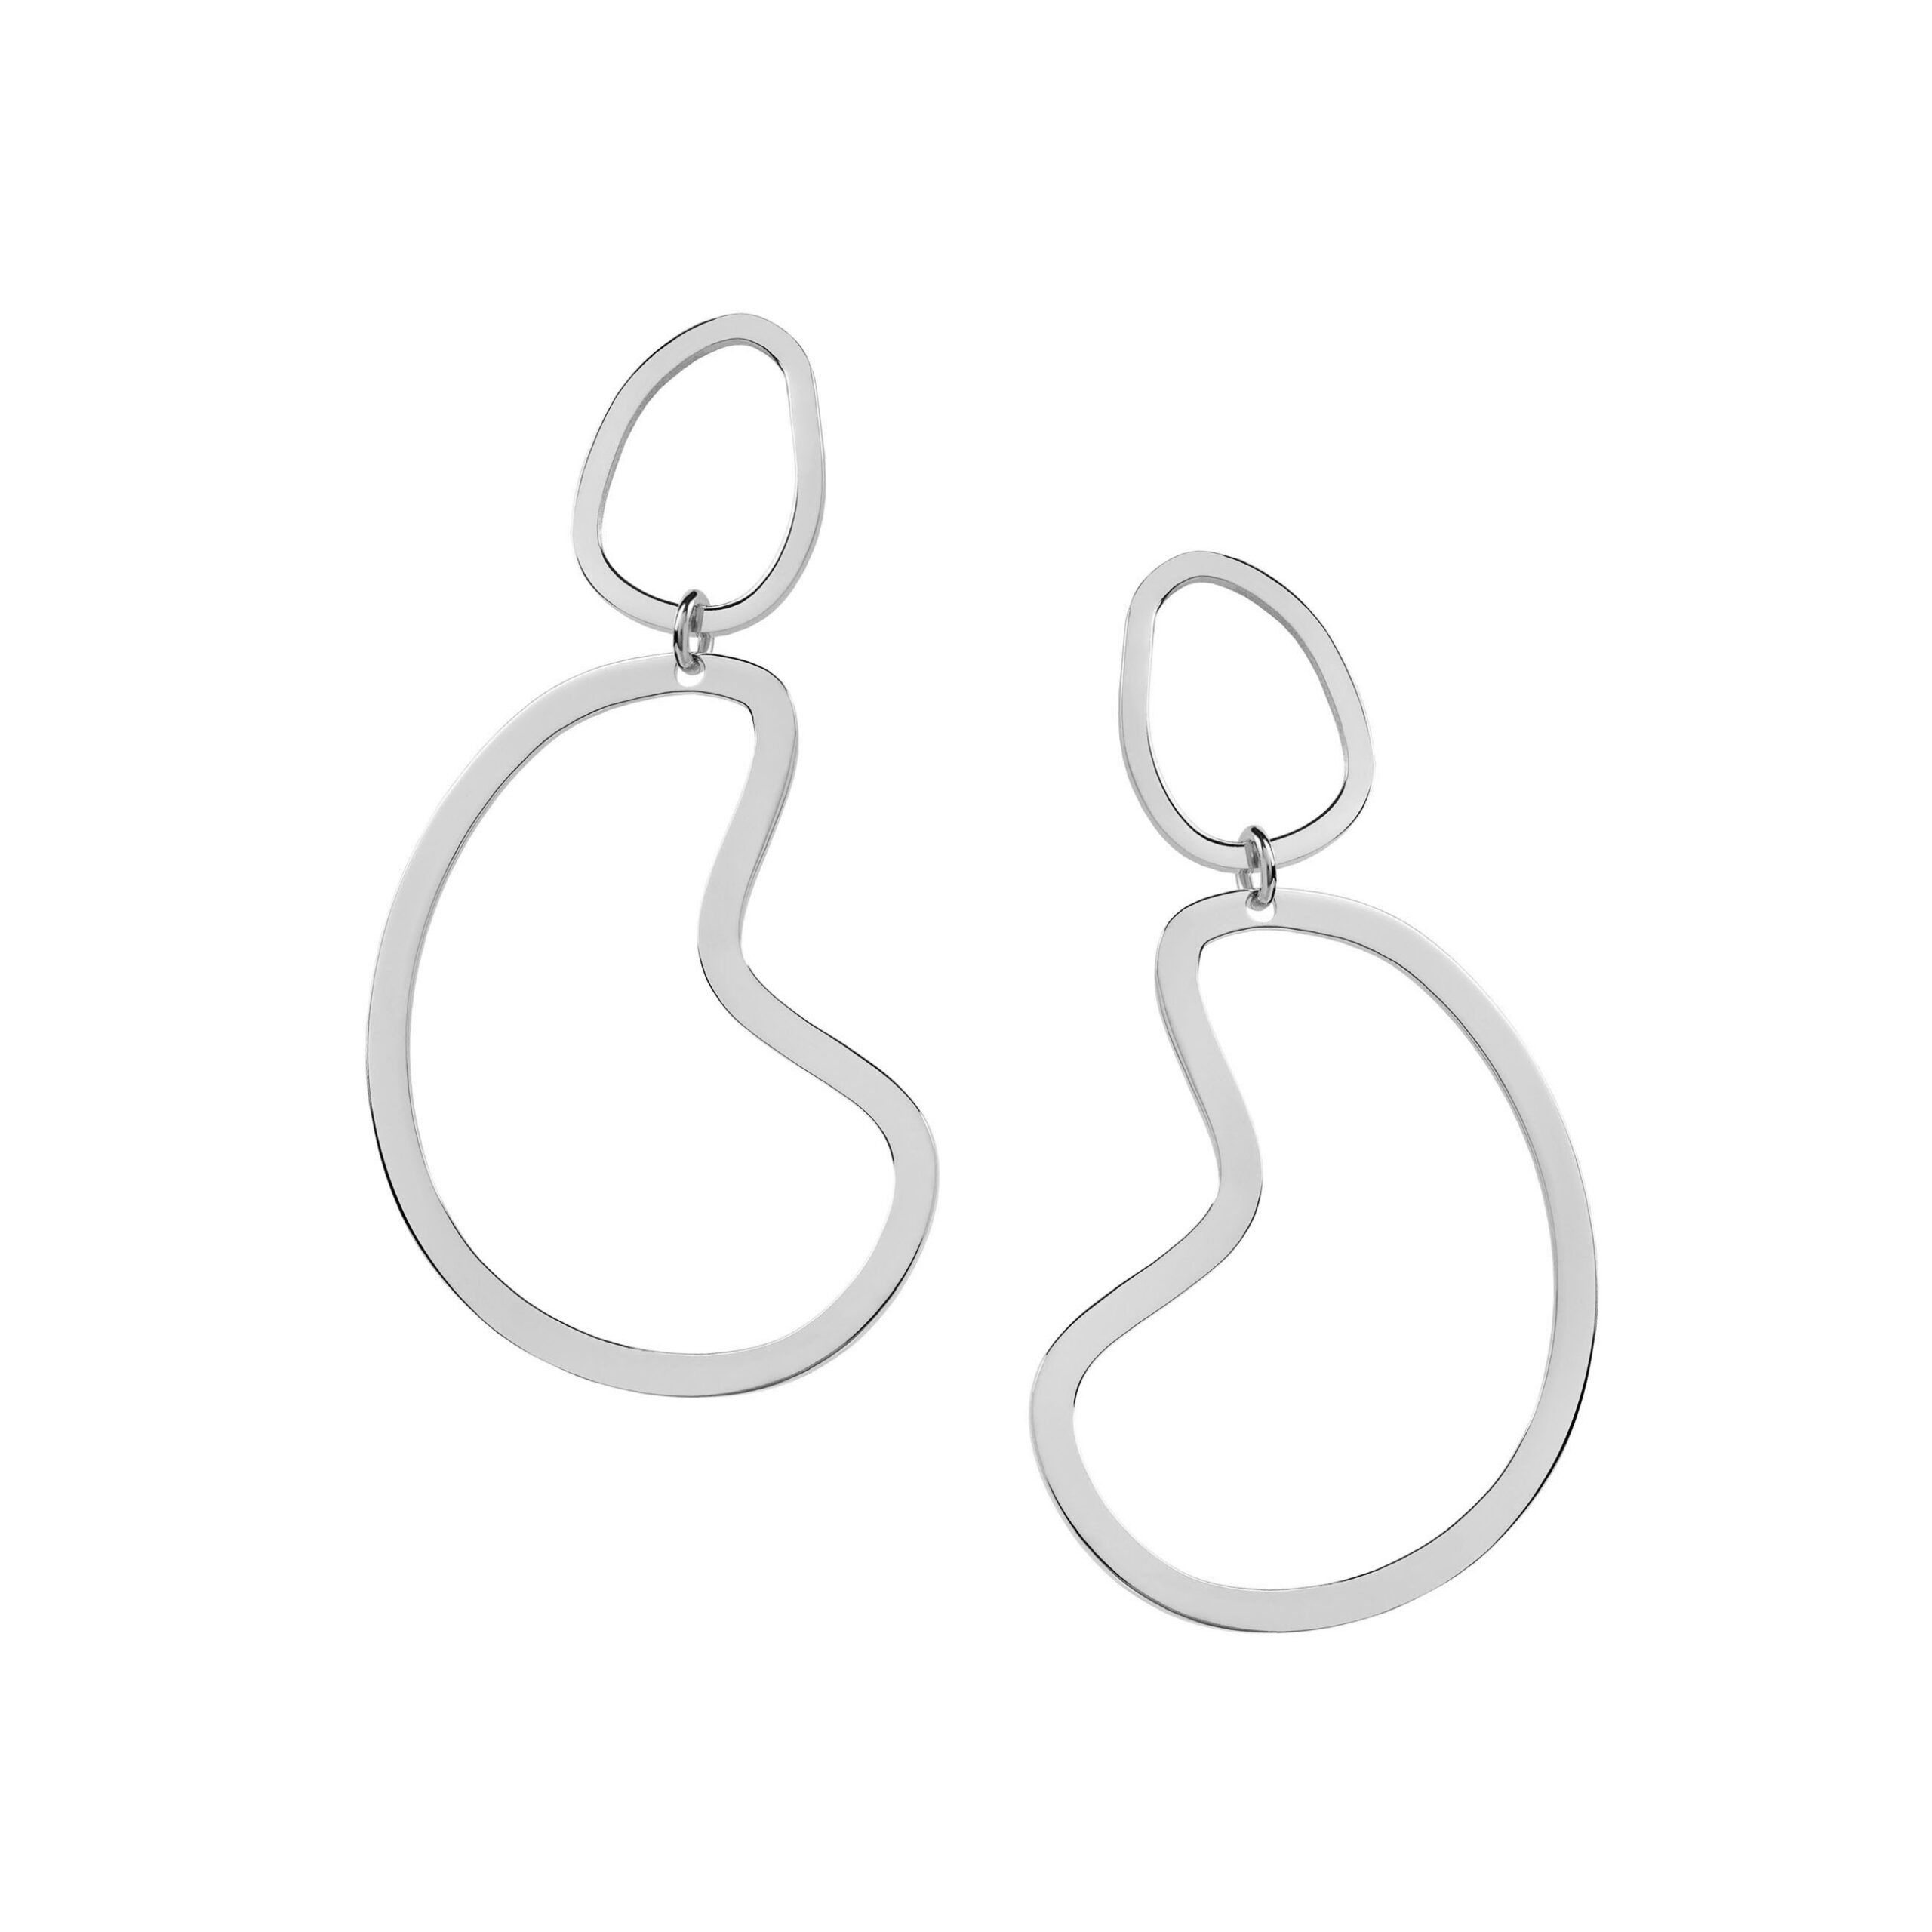 Big Arp Earrings Silver